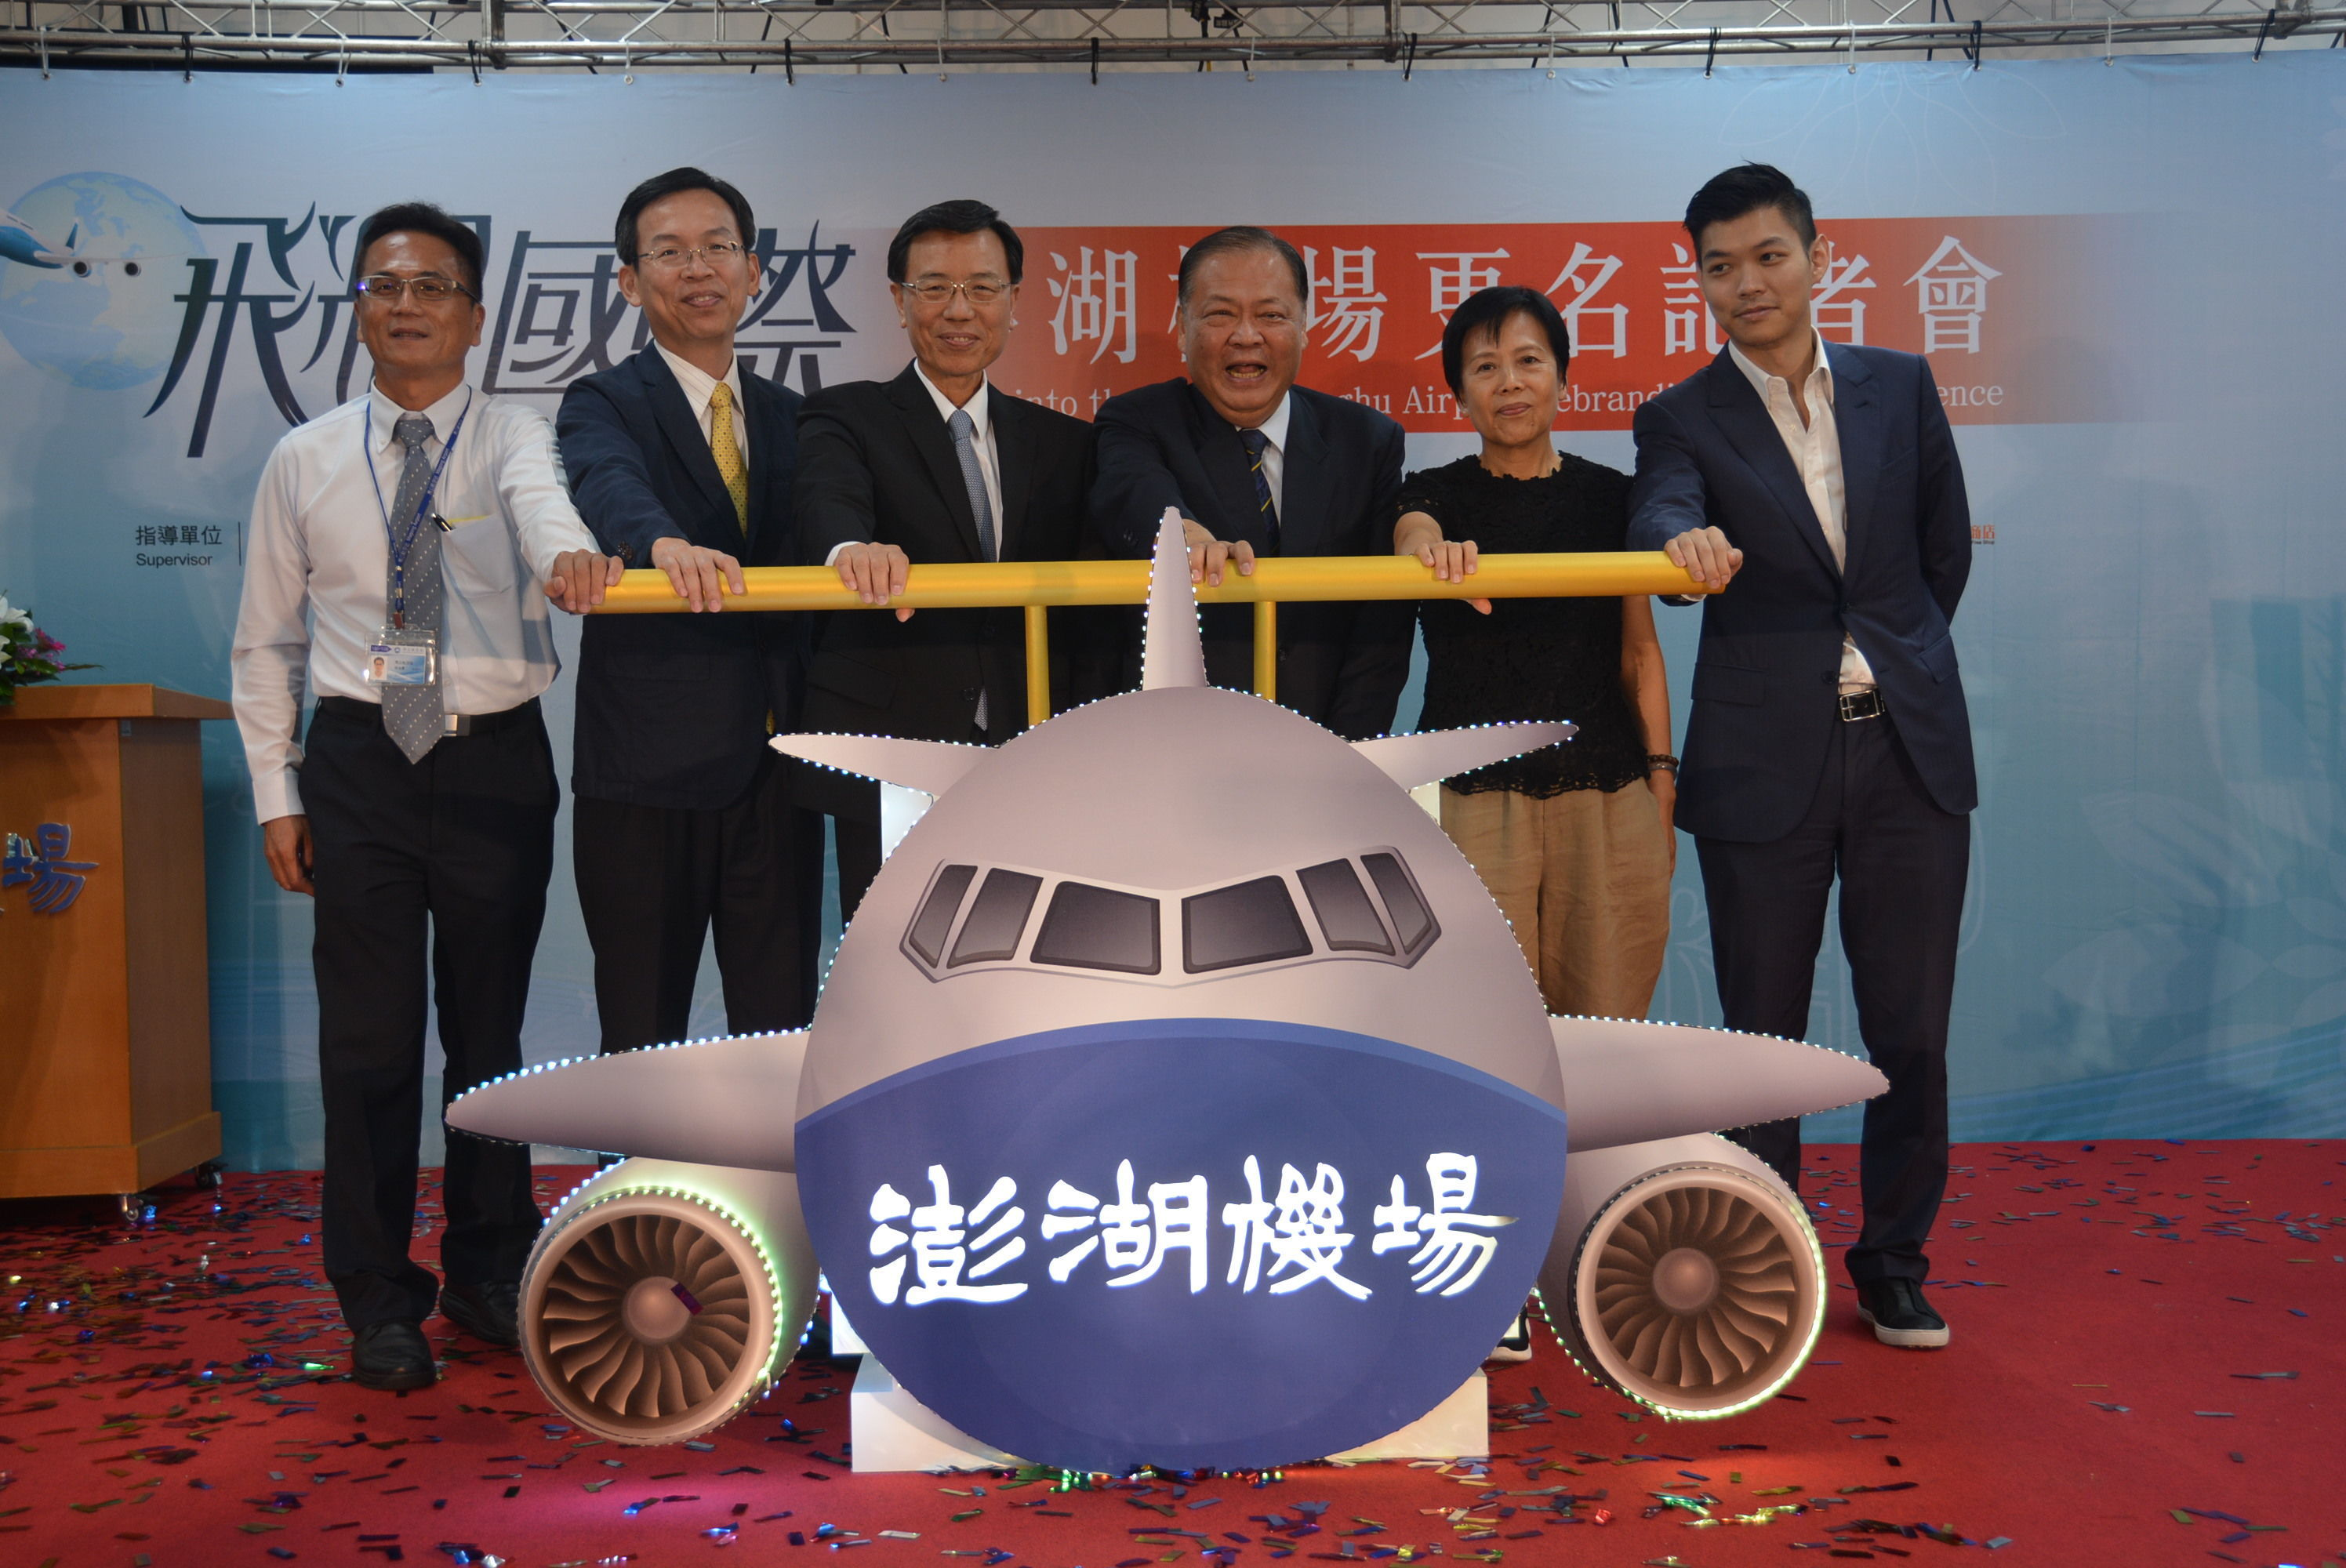 Chen County Chief and VIP jointly launched the name change